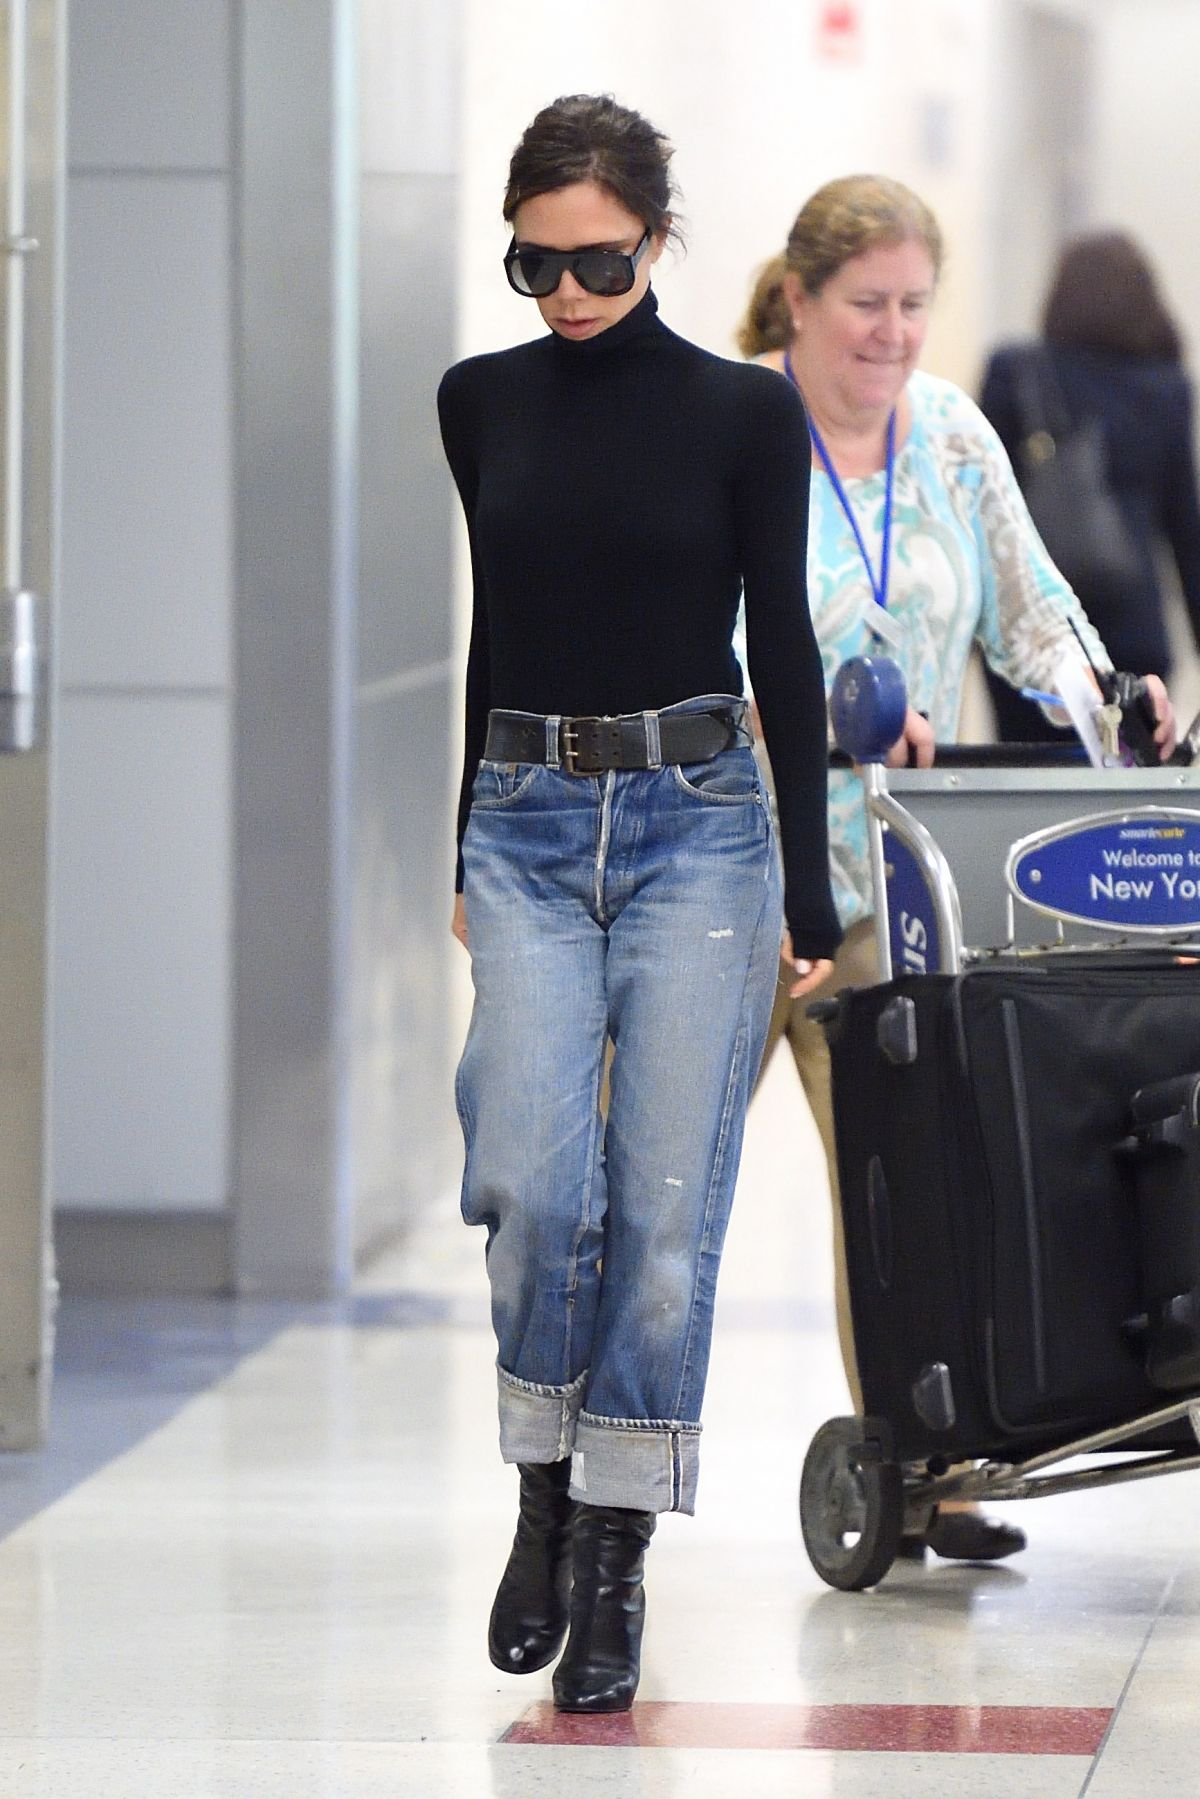 victoria beckham in jeans at jfk airport in new york 10 11 2017 hawtcelebs hawtcelebs. Black Bedroom Furniture Sets. Home Design Ideas